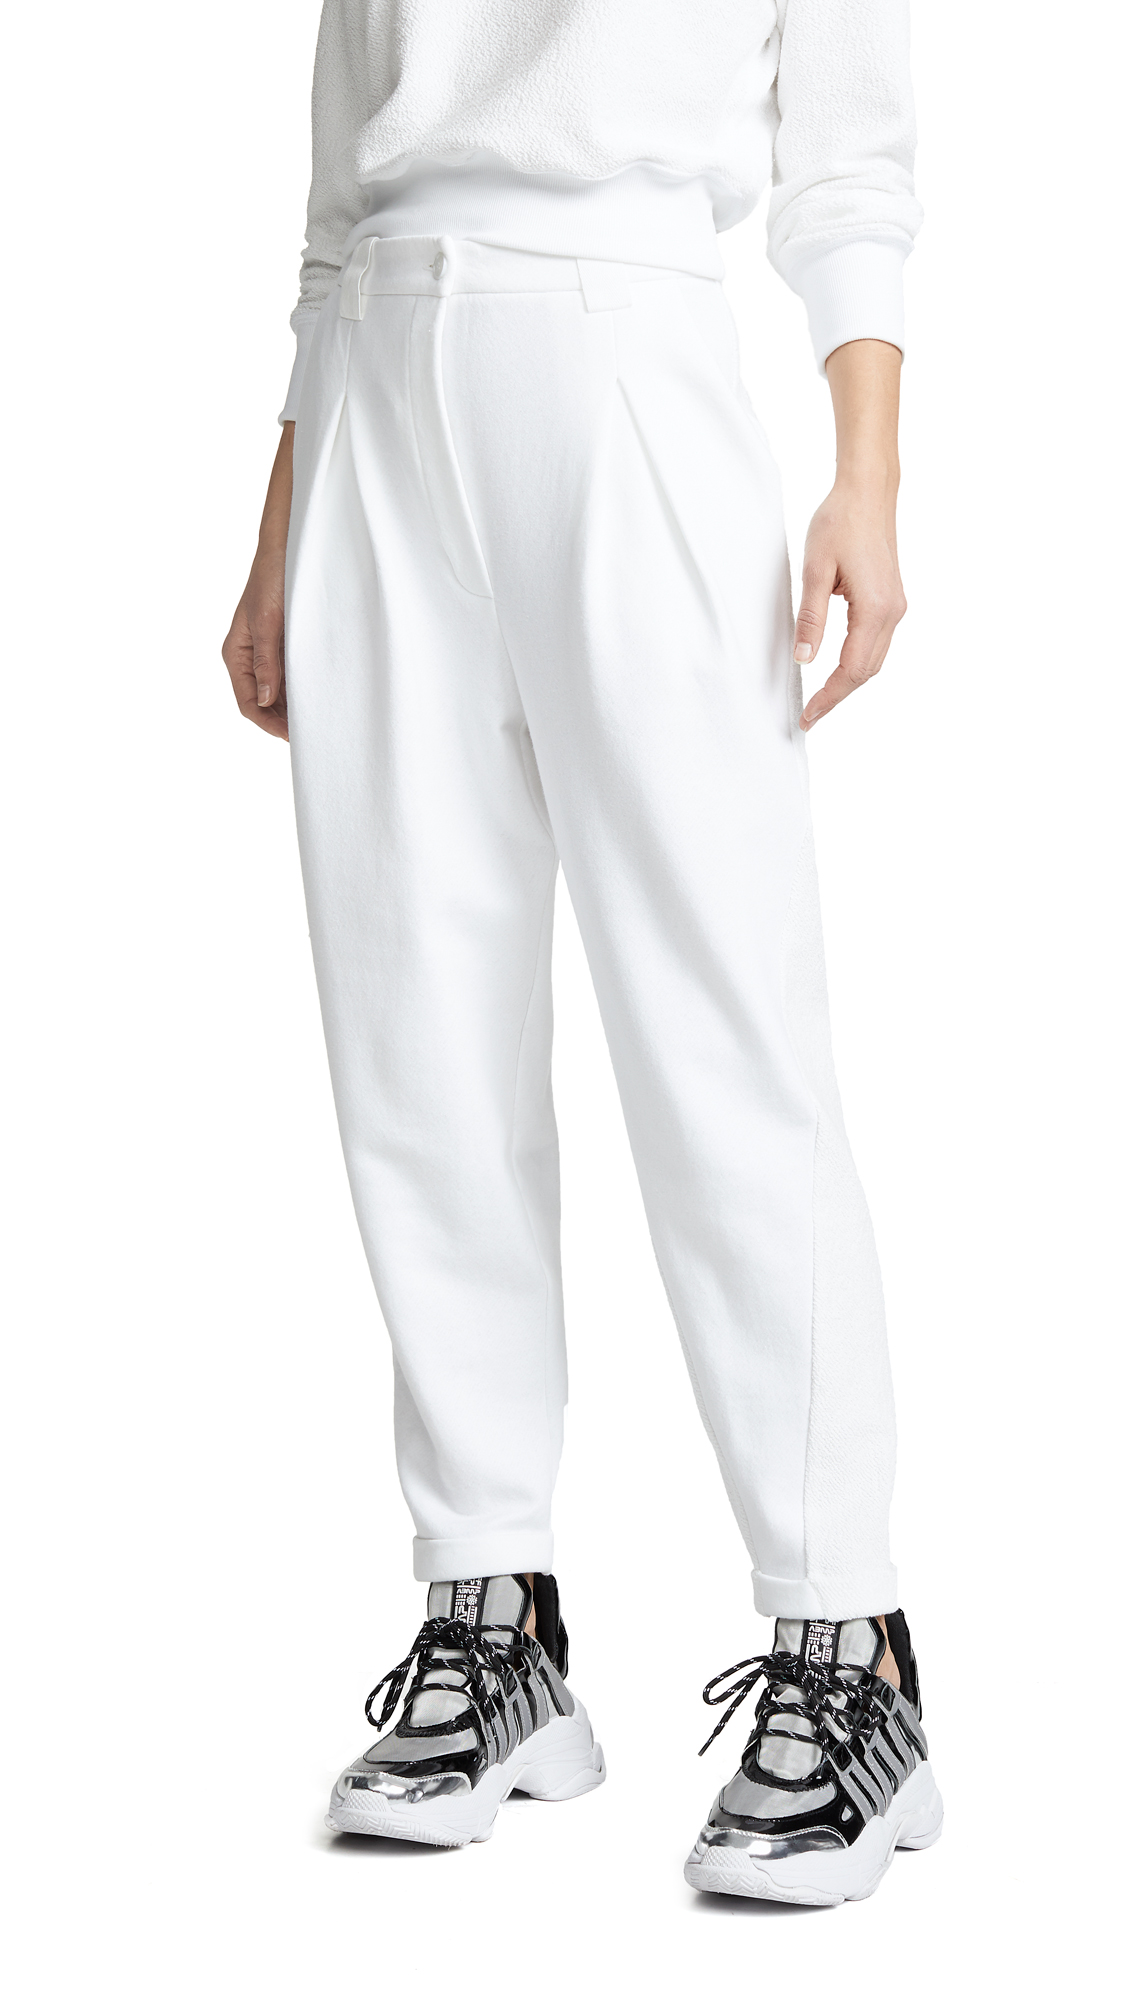 Sunnyside Trouser Sweatpants in Ivory